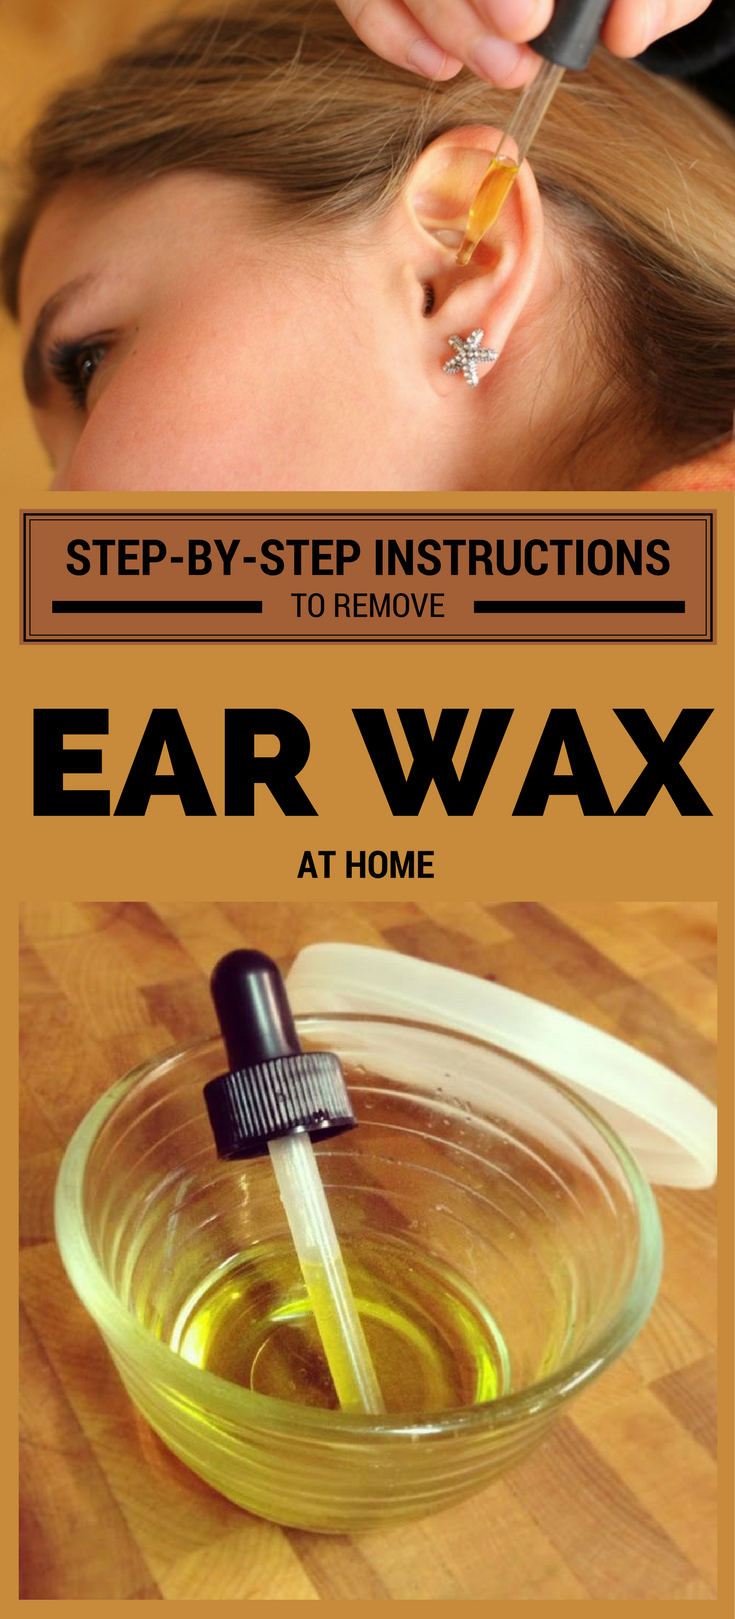 Step By Step Instructions To Remove Ear Wax At Home In 2020